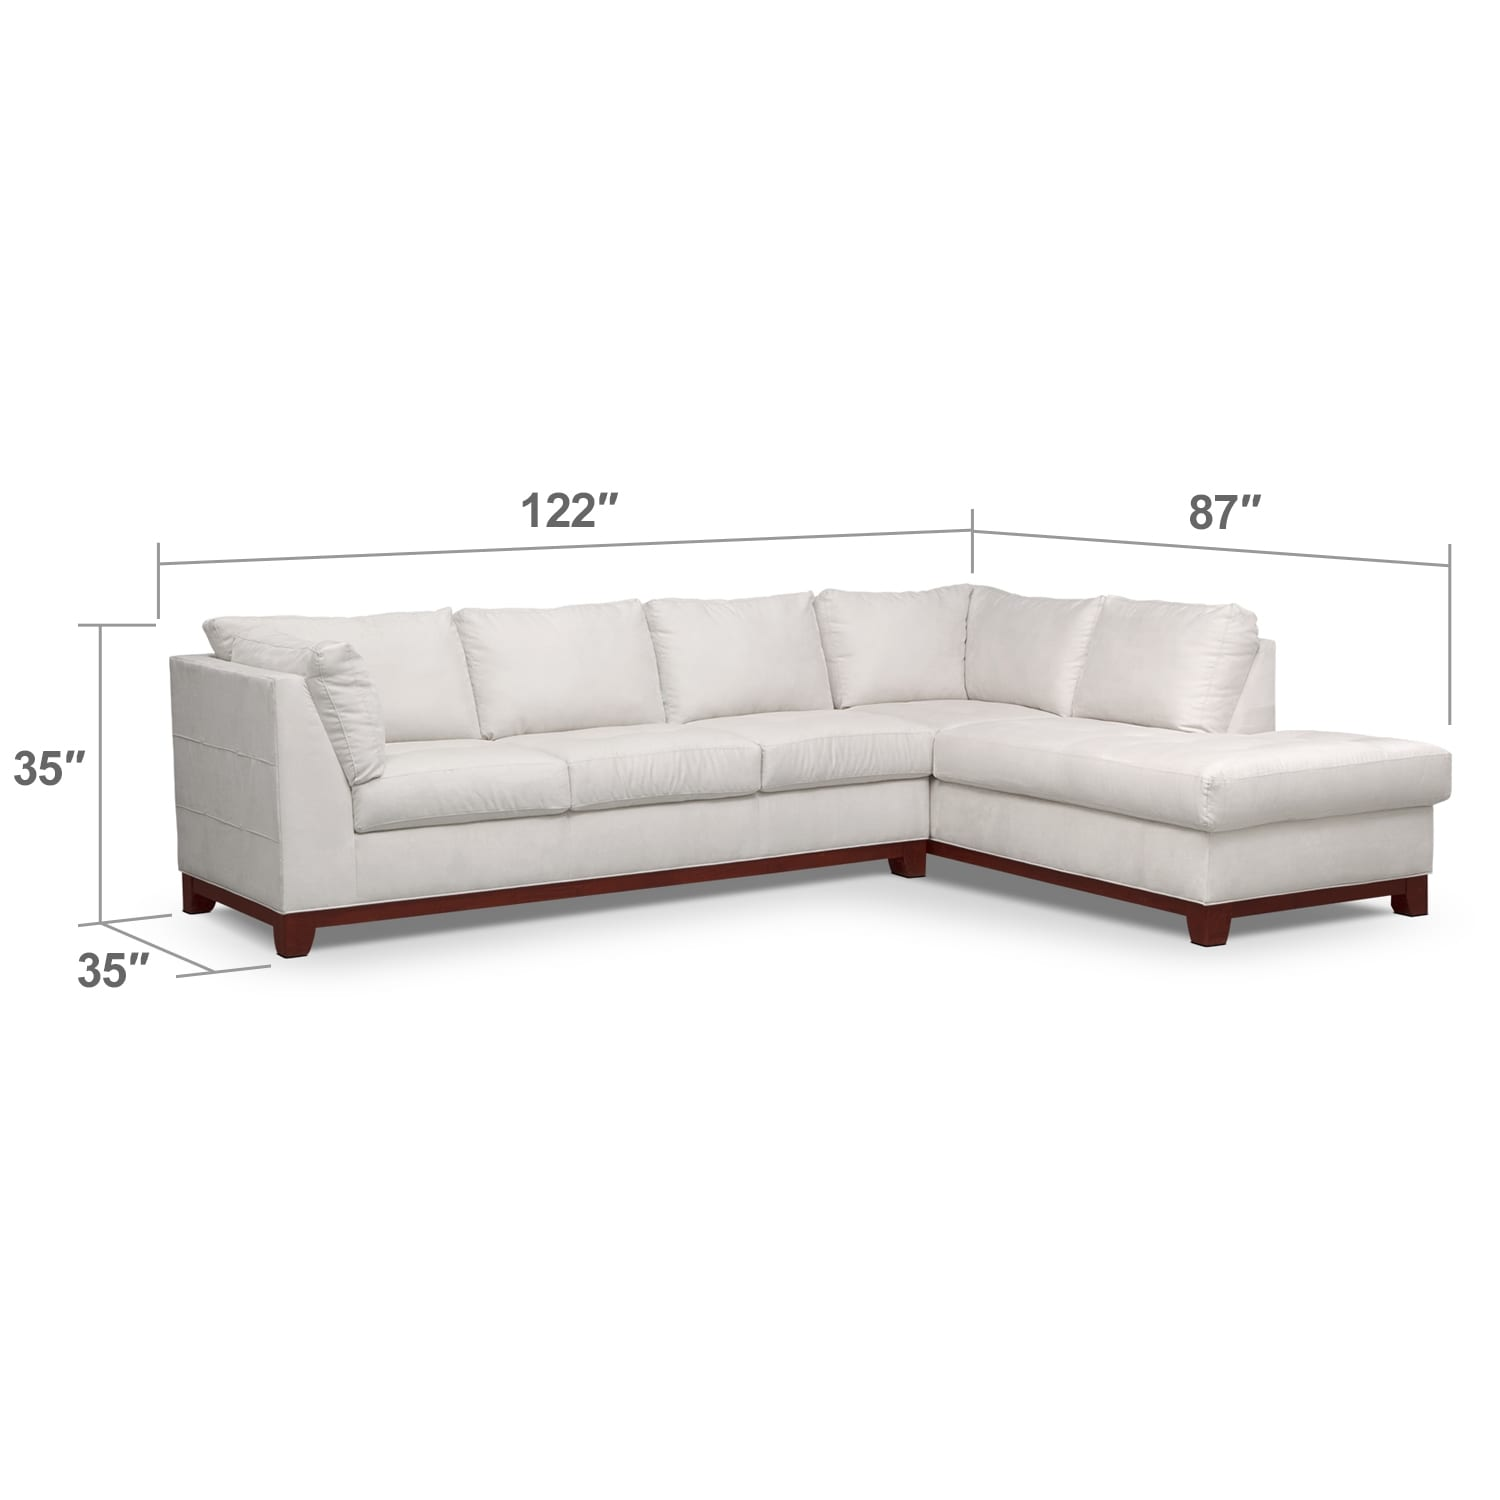 Living Room Furniture - Soho 2-Piece Sectional with Right-Facing Chaise - Cement